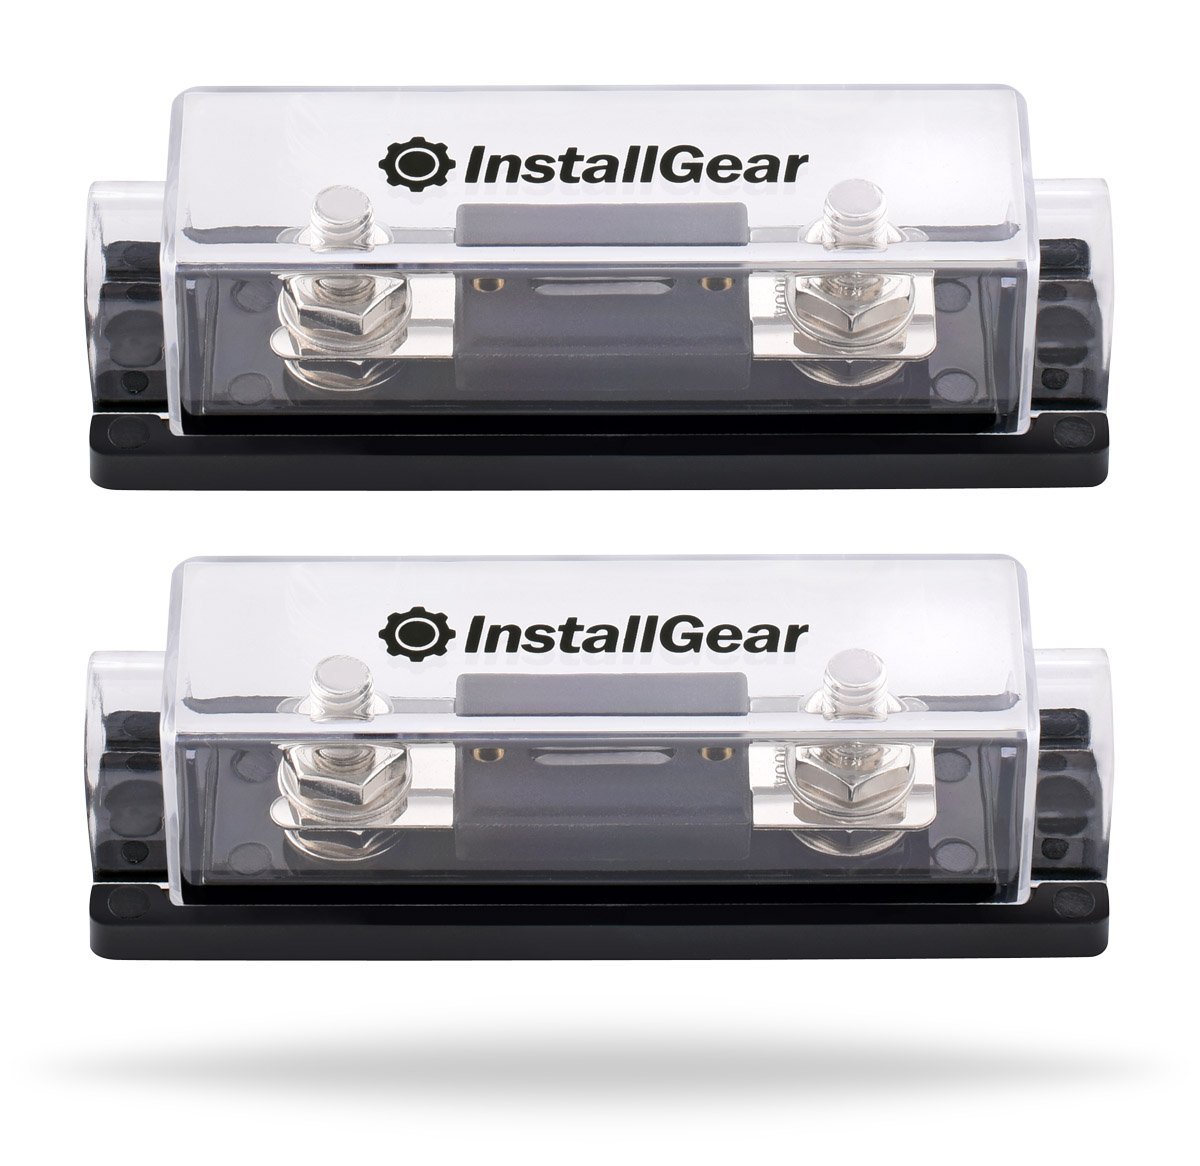 Amazon.com: InstallGear 0/2/4 Gauge Ga ANL Fuse Holder + 250 Amp ANL Fuses  (2 Pack): Automotive